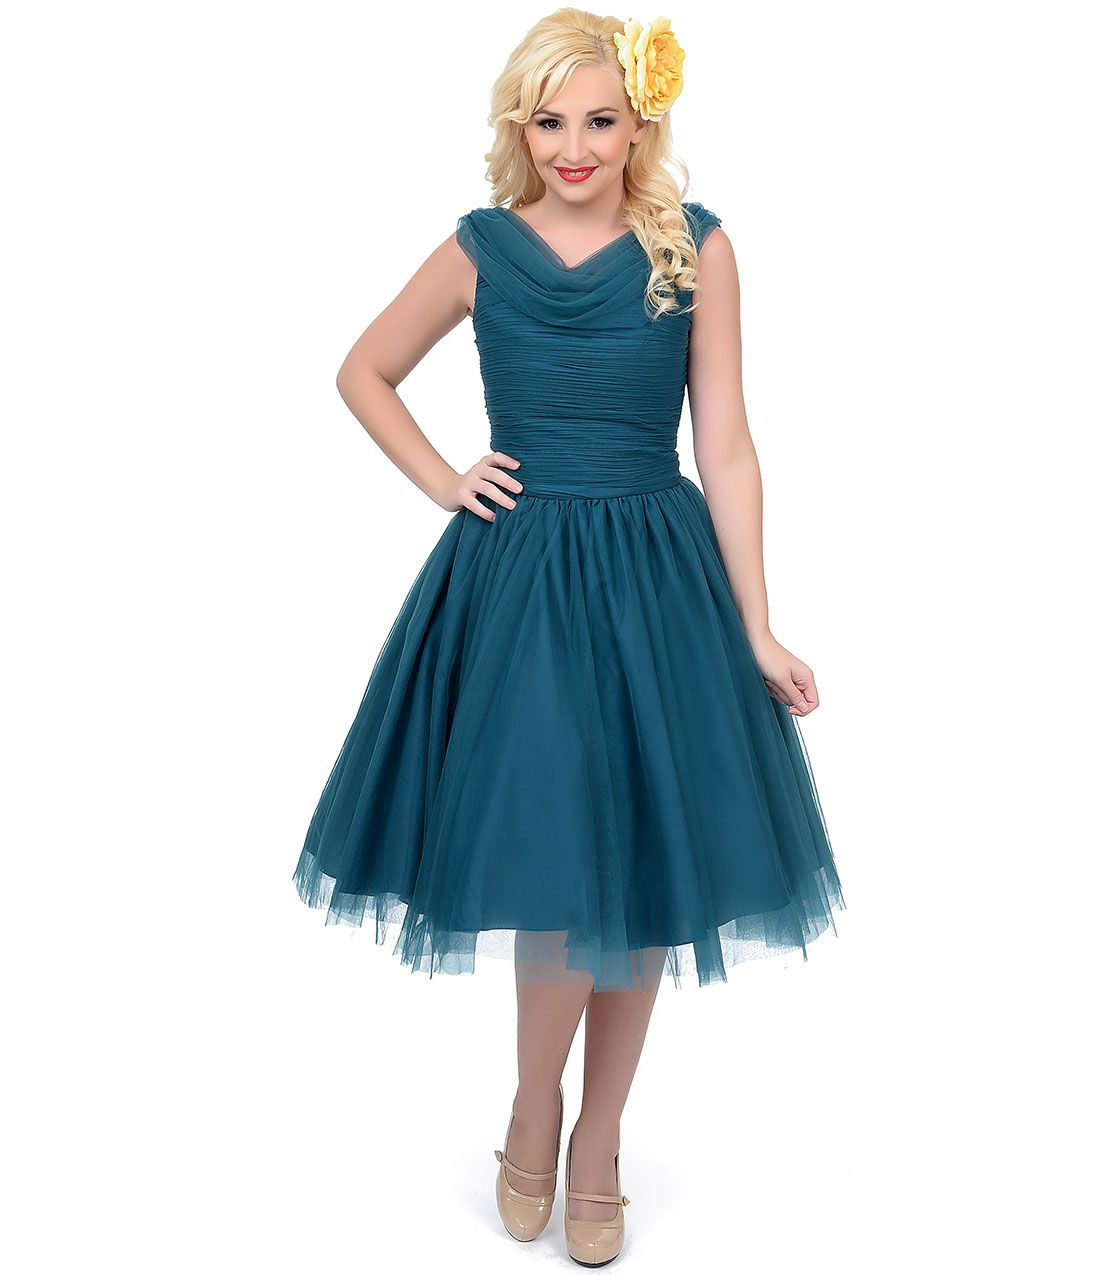 1950s Prom Dresses Formal Dresses Evening Gowns Teal Cocktail Dress Tulle Homecoming Dress Dresses [ 1275 x 1095 Pixel ]